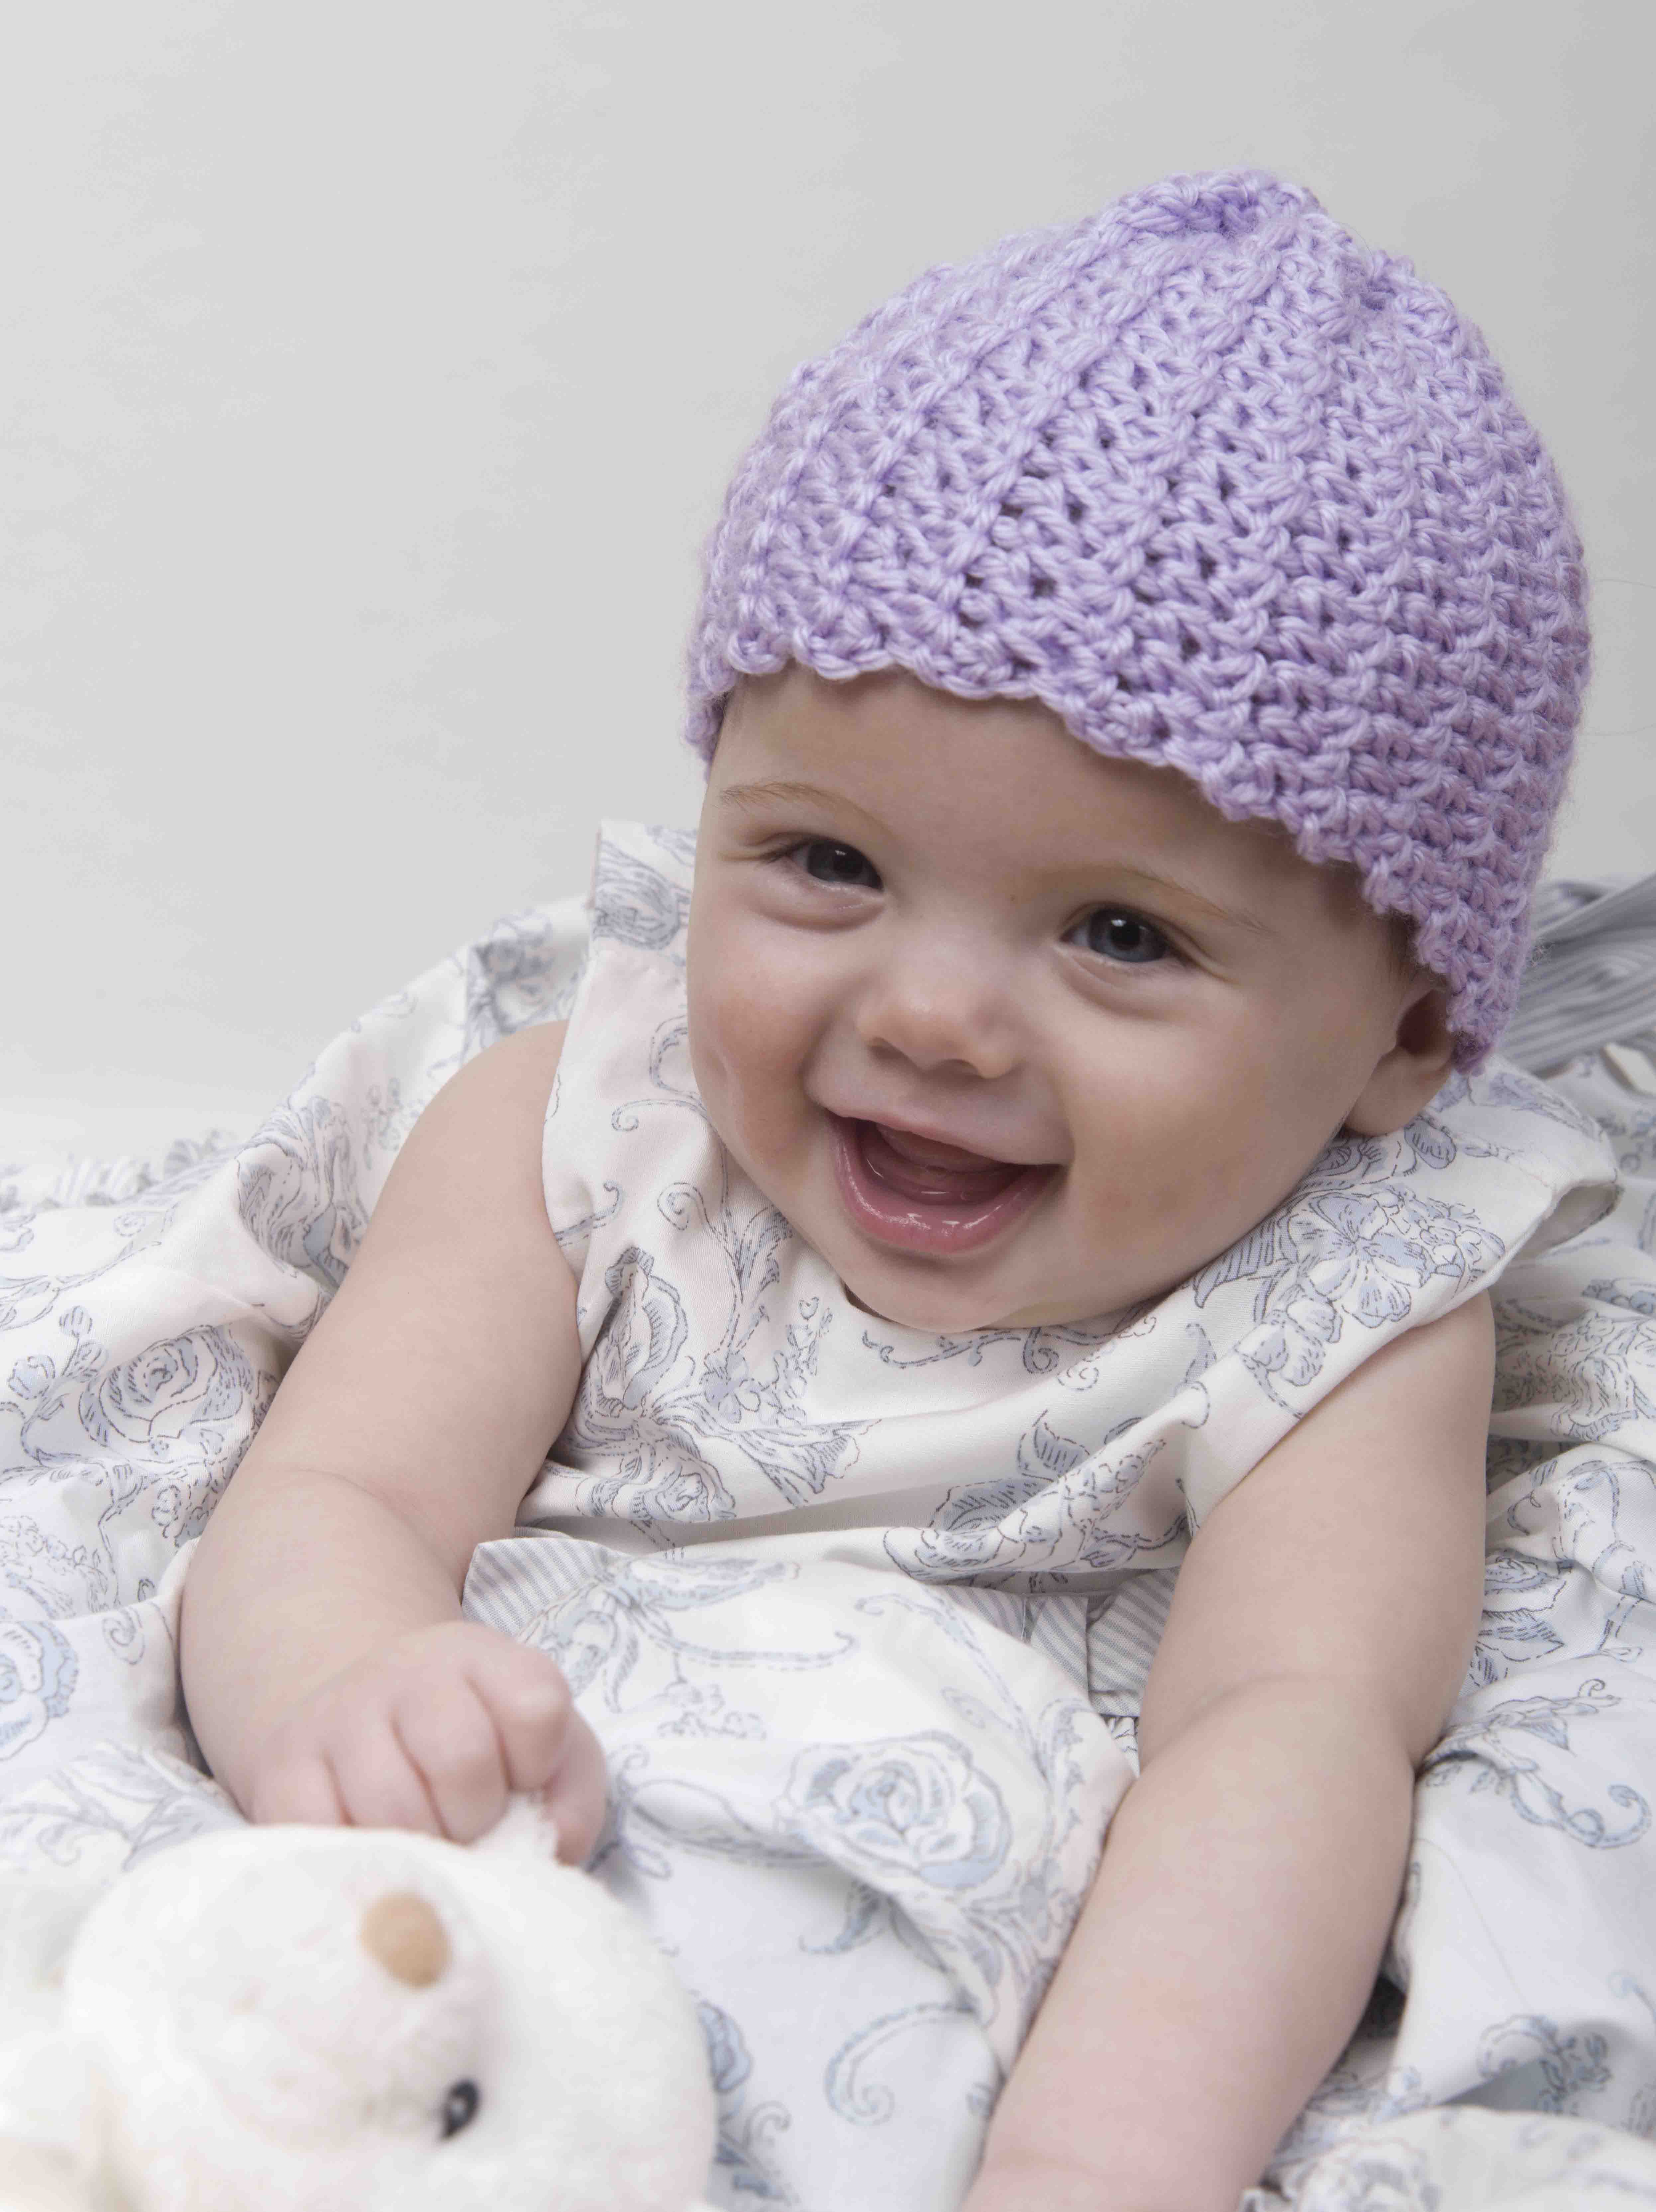 Crochet Baby Hat Hooked On Crafting